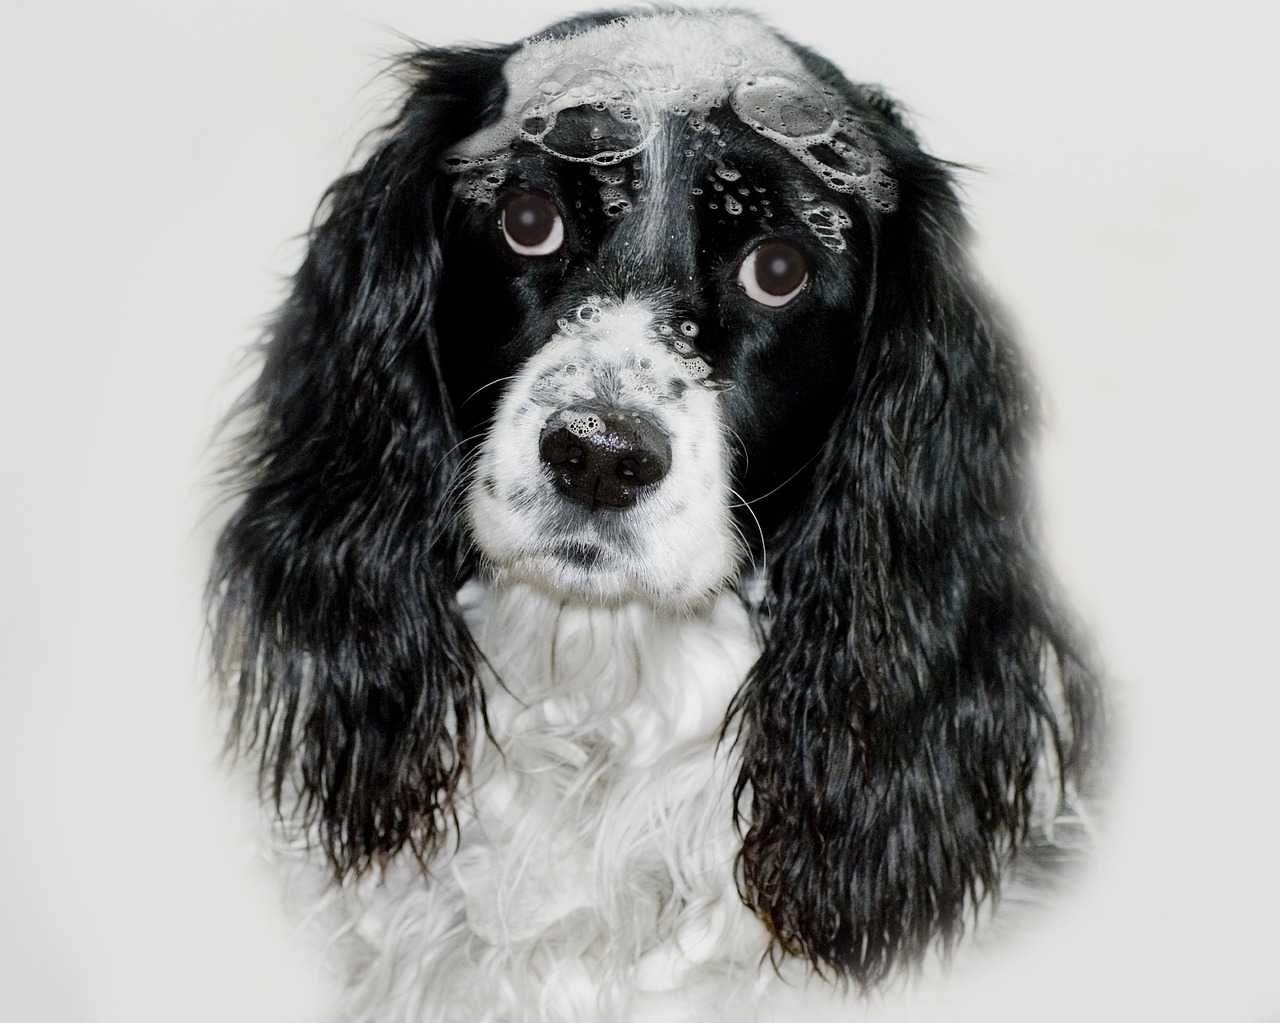 Choosing The Perfect Shampoo For Your Dog